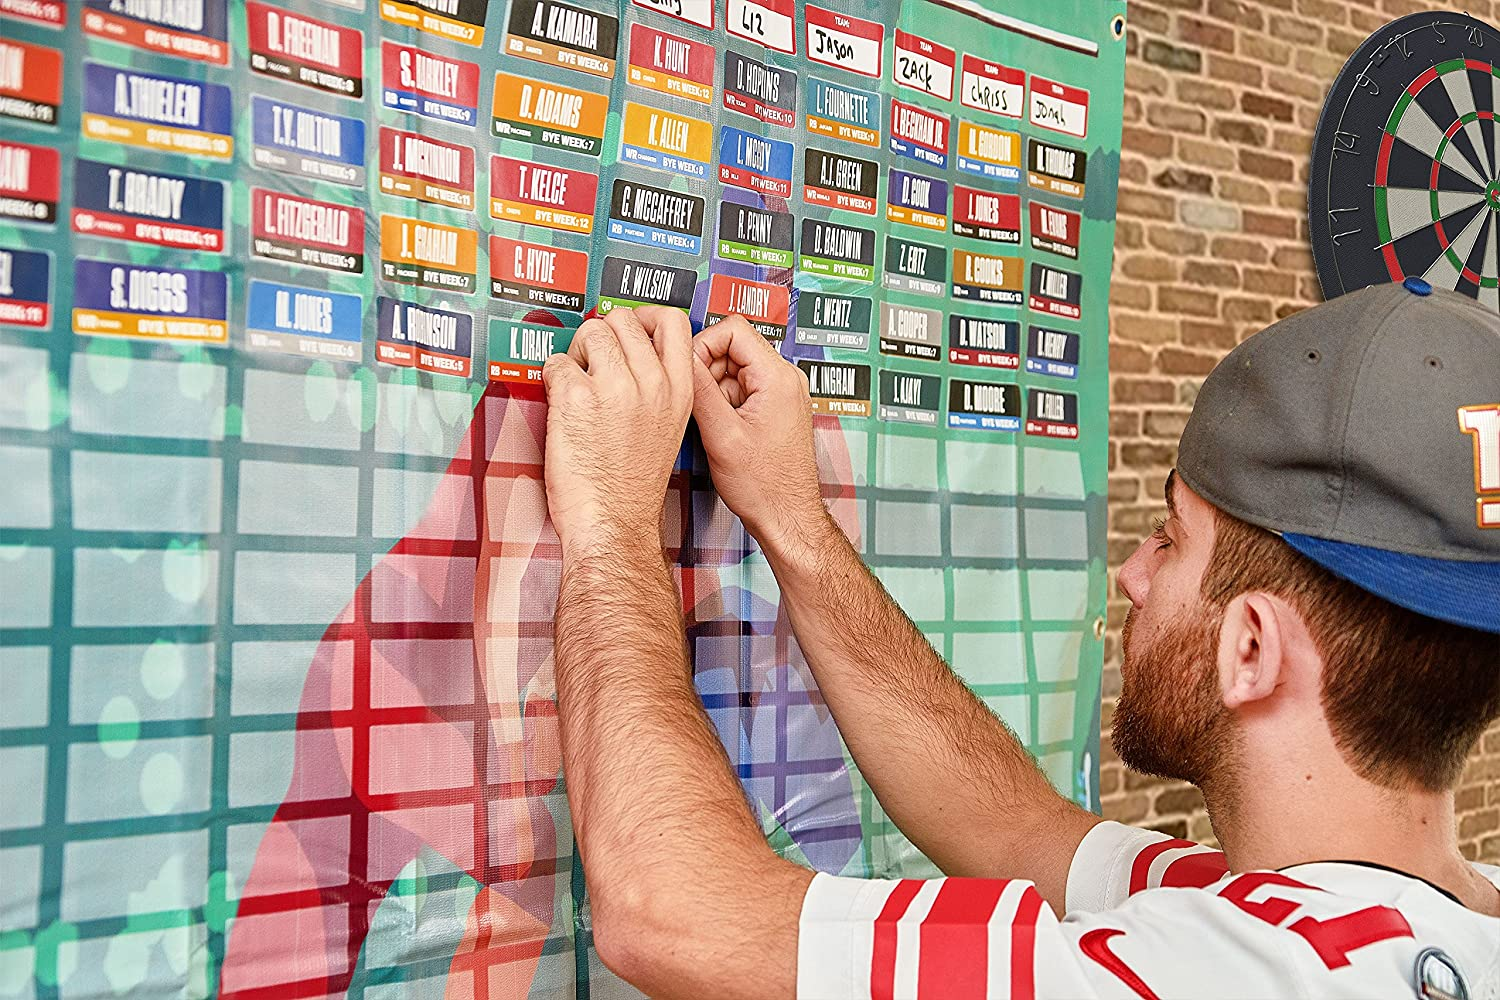 2020 Fantasy Football Draft Board Kit with Over 400 Player Labels Alphabetized by Position